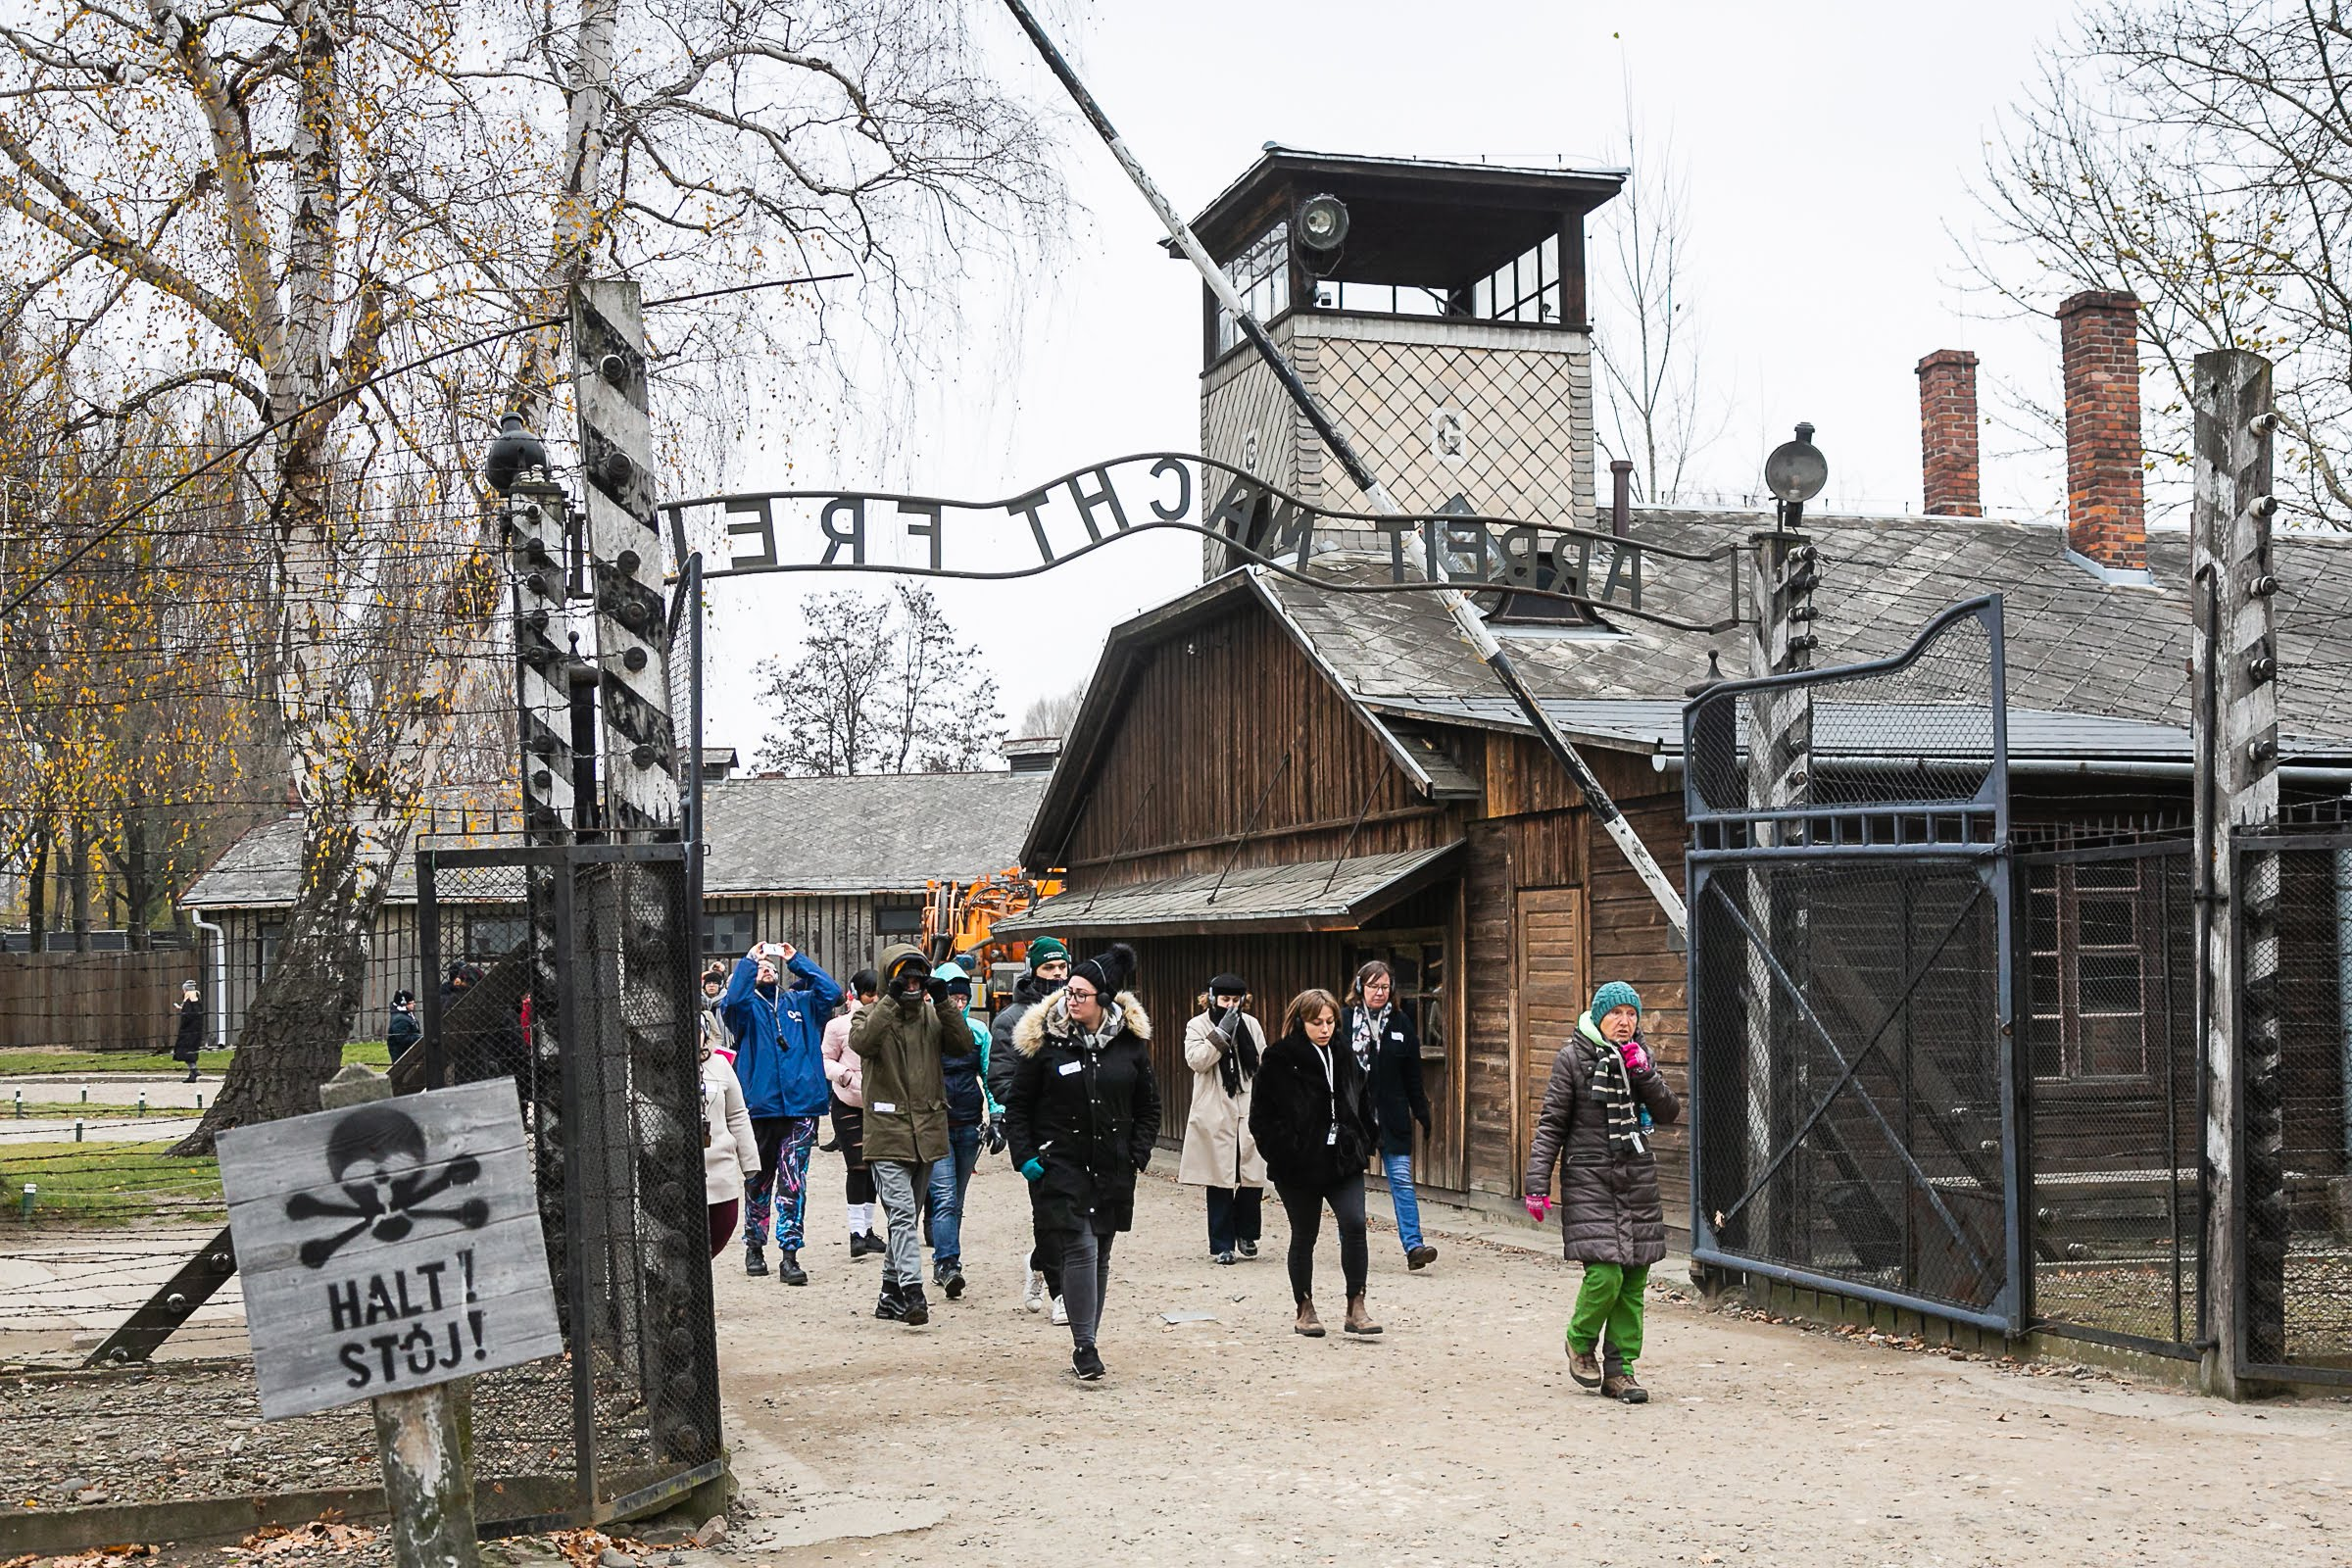 University, student union and NUS leaders visit Auschwitz-Birkenau as part of our 'Lessons from Auschwitz' Universities Project together with HET, November 2018